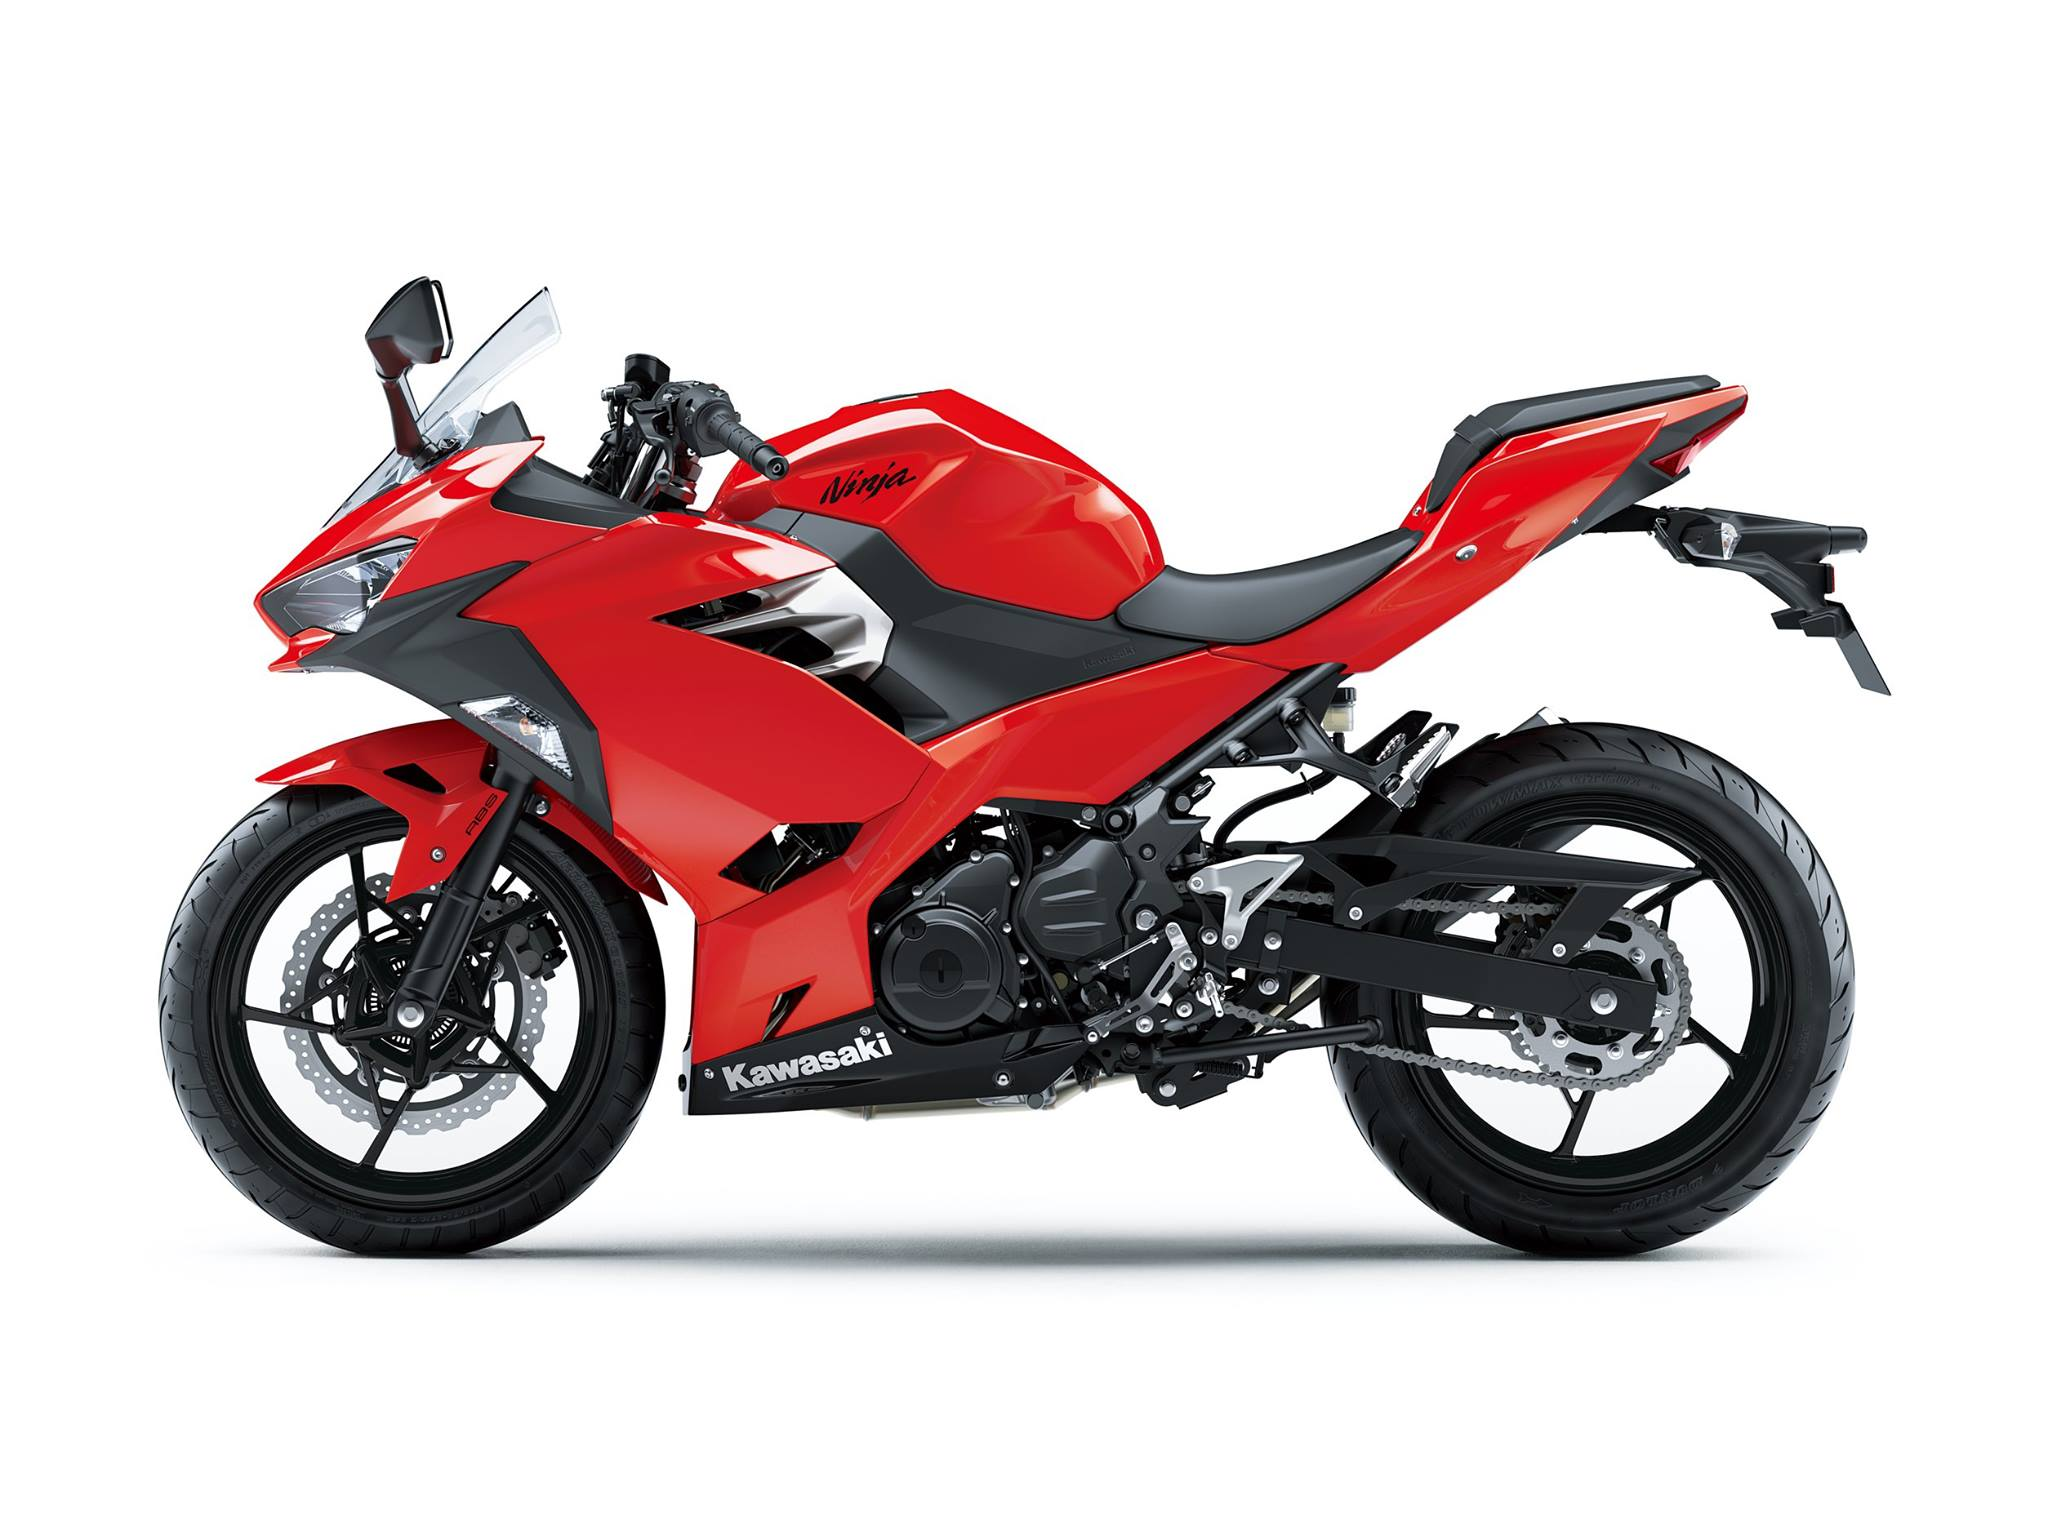 All New Kawasaki Ninja 250 Fi Versi 2018 Warna Merah 1 P7